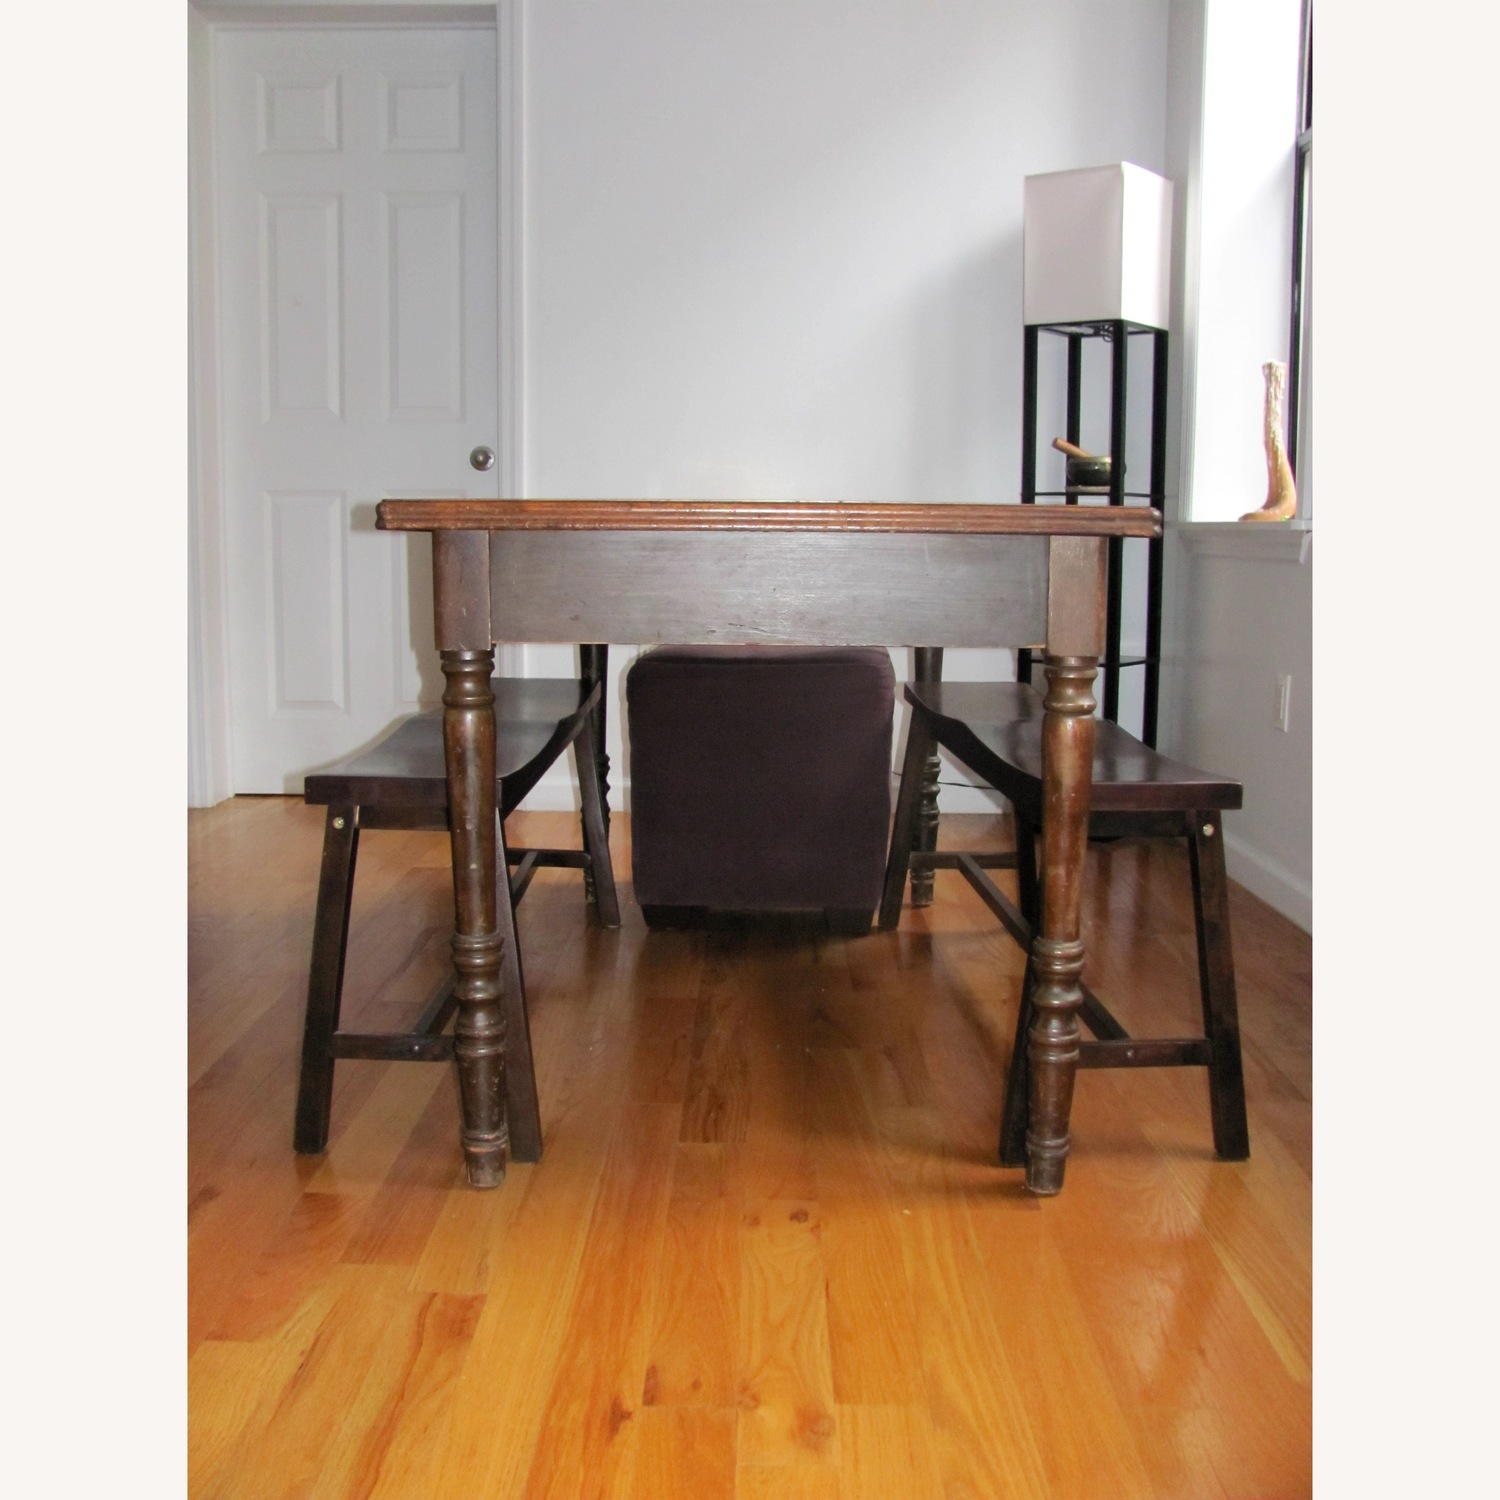 Vintage Wood Dining Table w/ 2 Benches - image-2